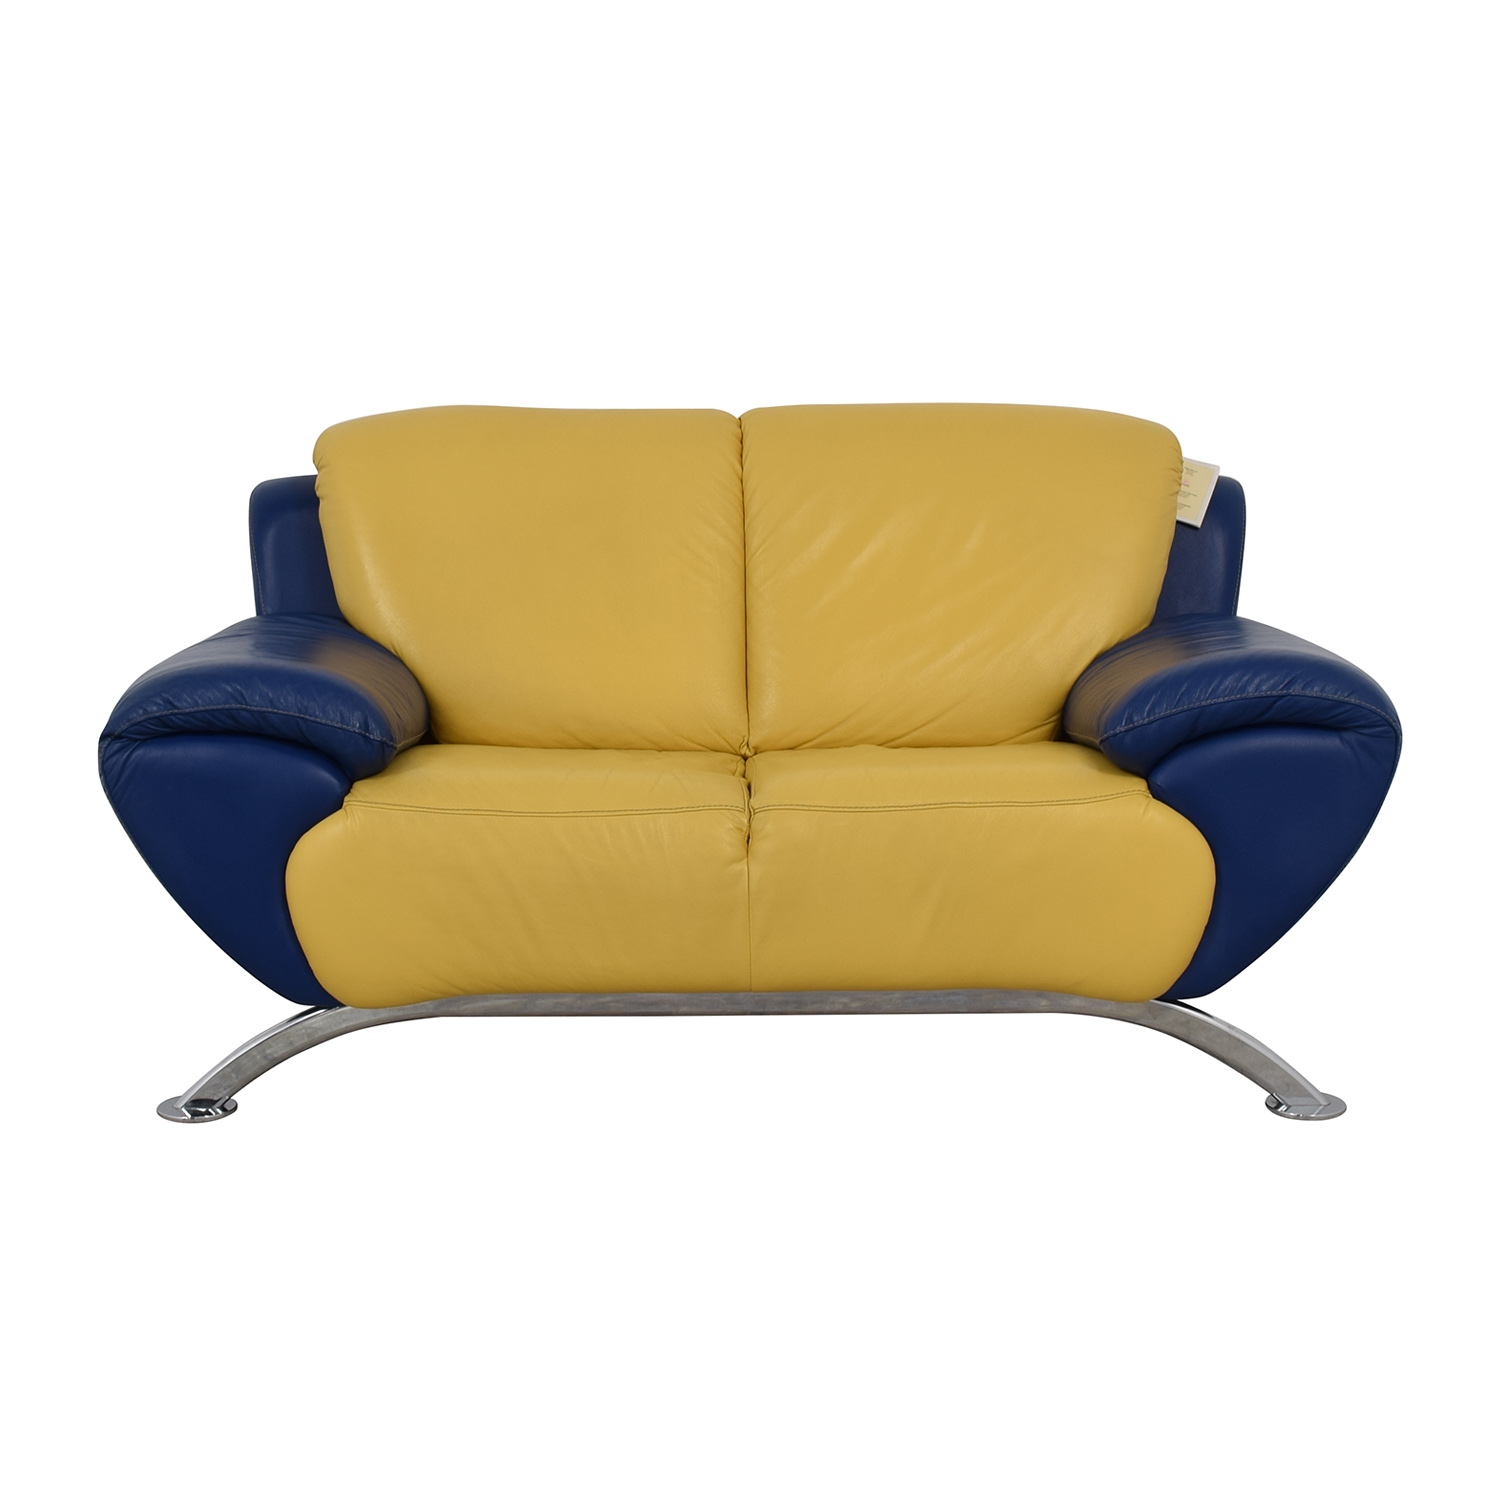 Satis Modern Yellow and Blue Leather Loveseat / Loveseats